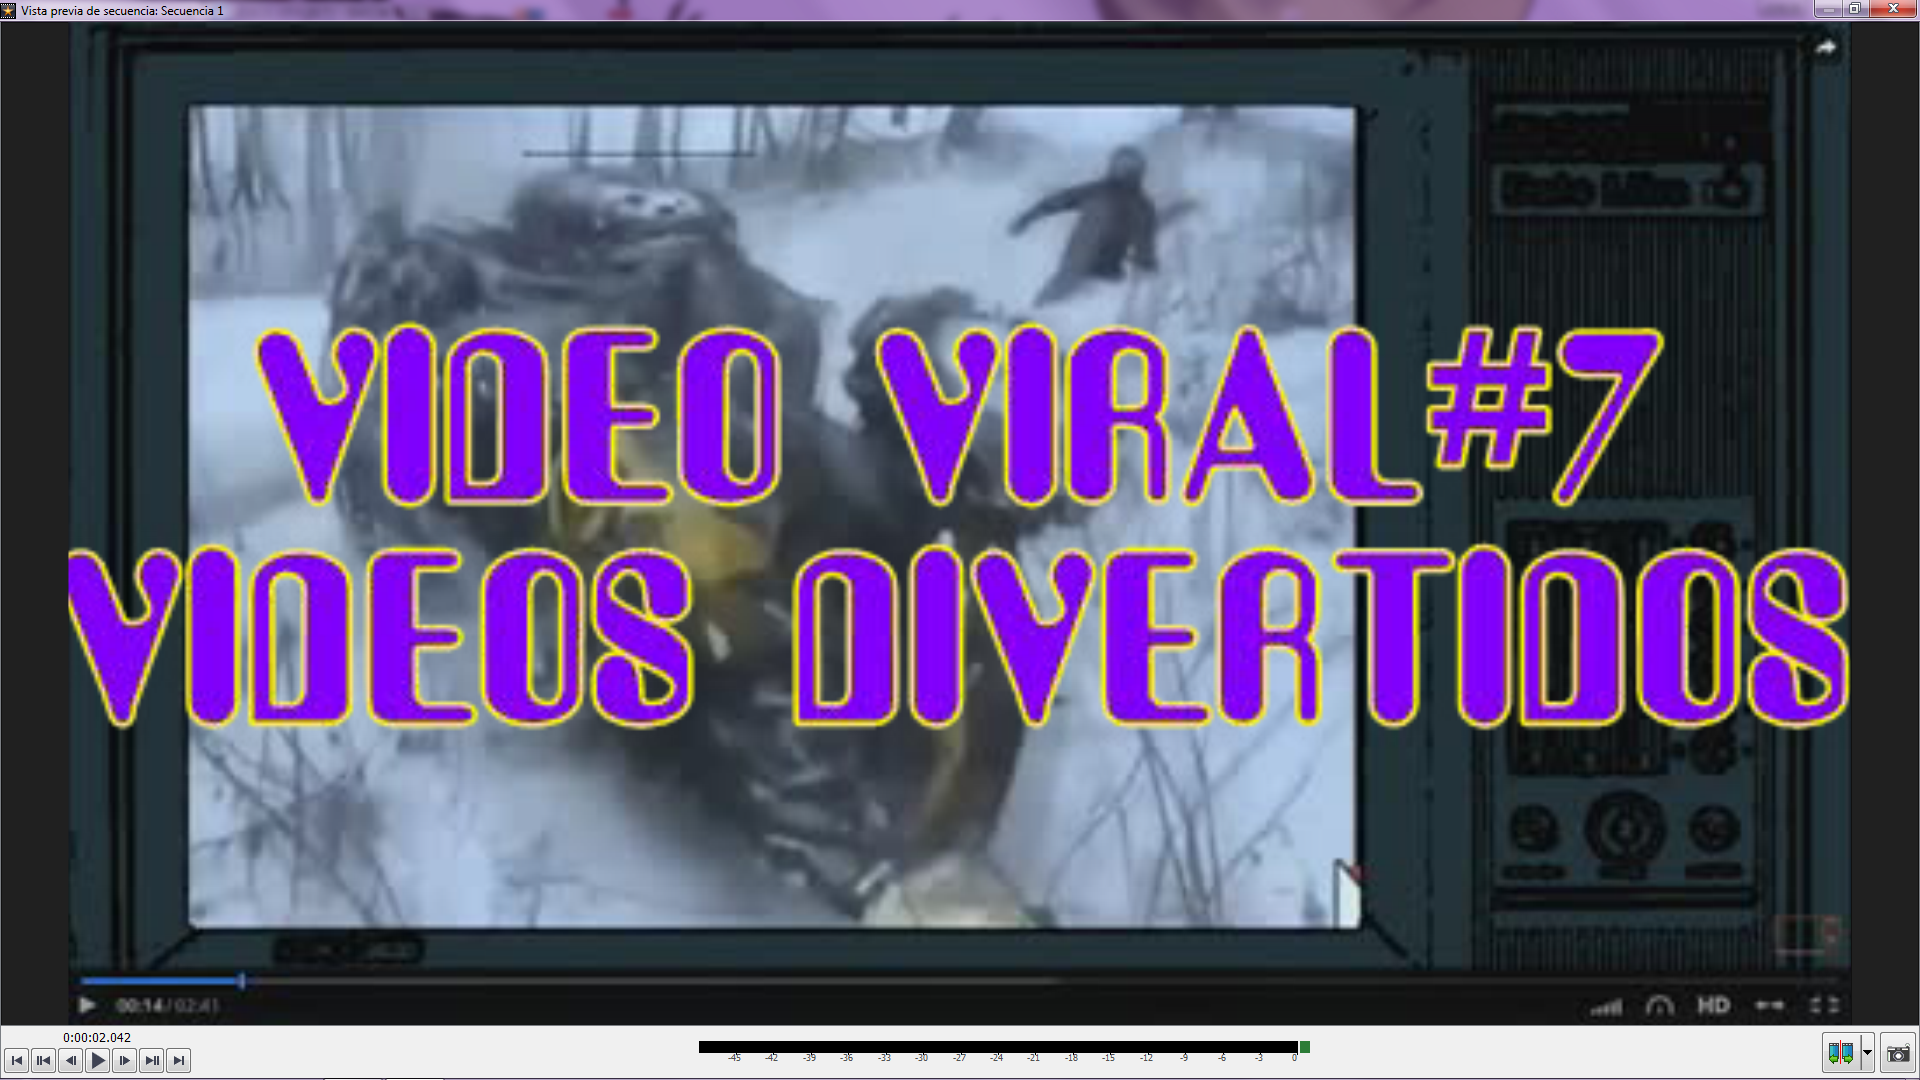 VIDEO VIRAL #7,videos virales, videos de caidas, videos chistosos,videos de risa, videos de humor,videos graciosos,videos mas vistos, funny videos,videos de bromas,videos insoliyos,fallen videos,viral videos,videos of jokes,Most seen,TOP 10,TOP 5,